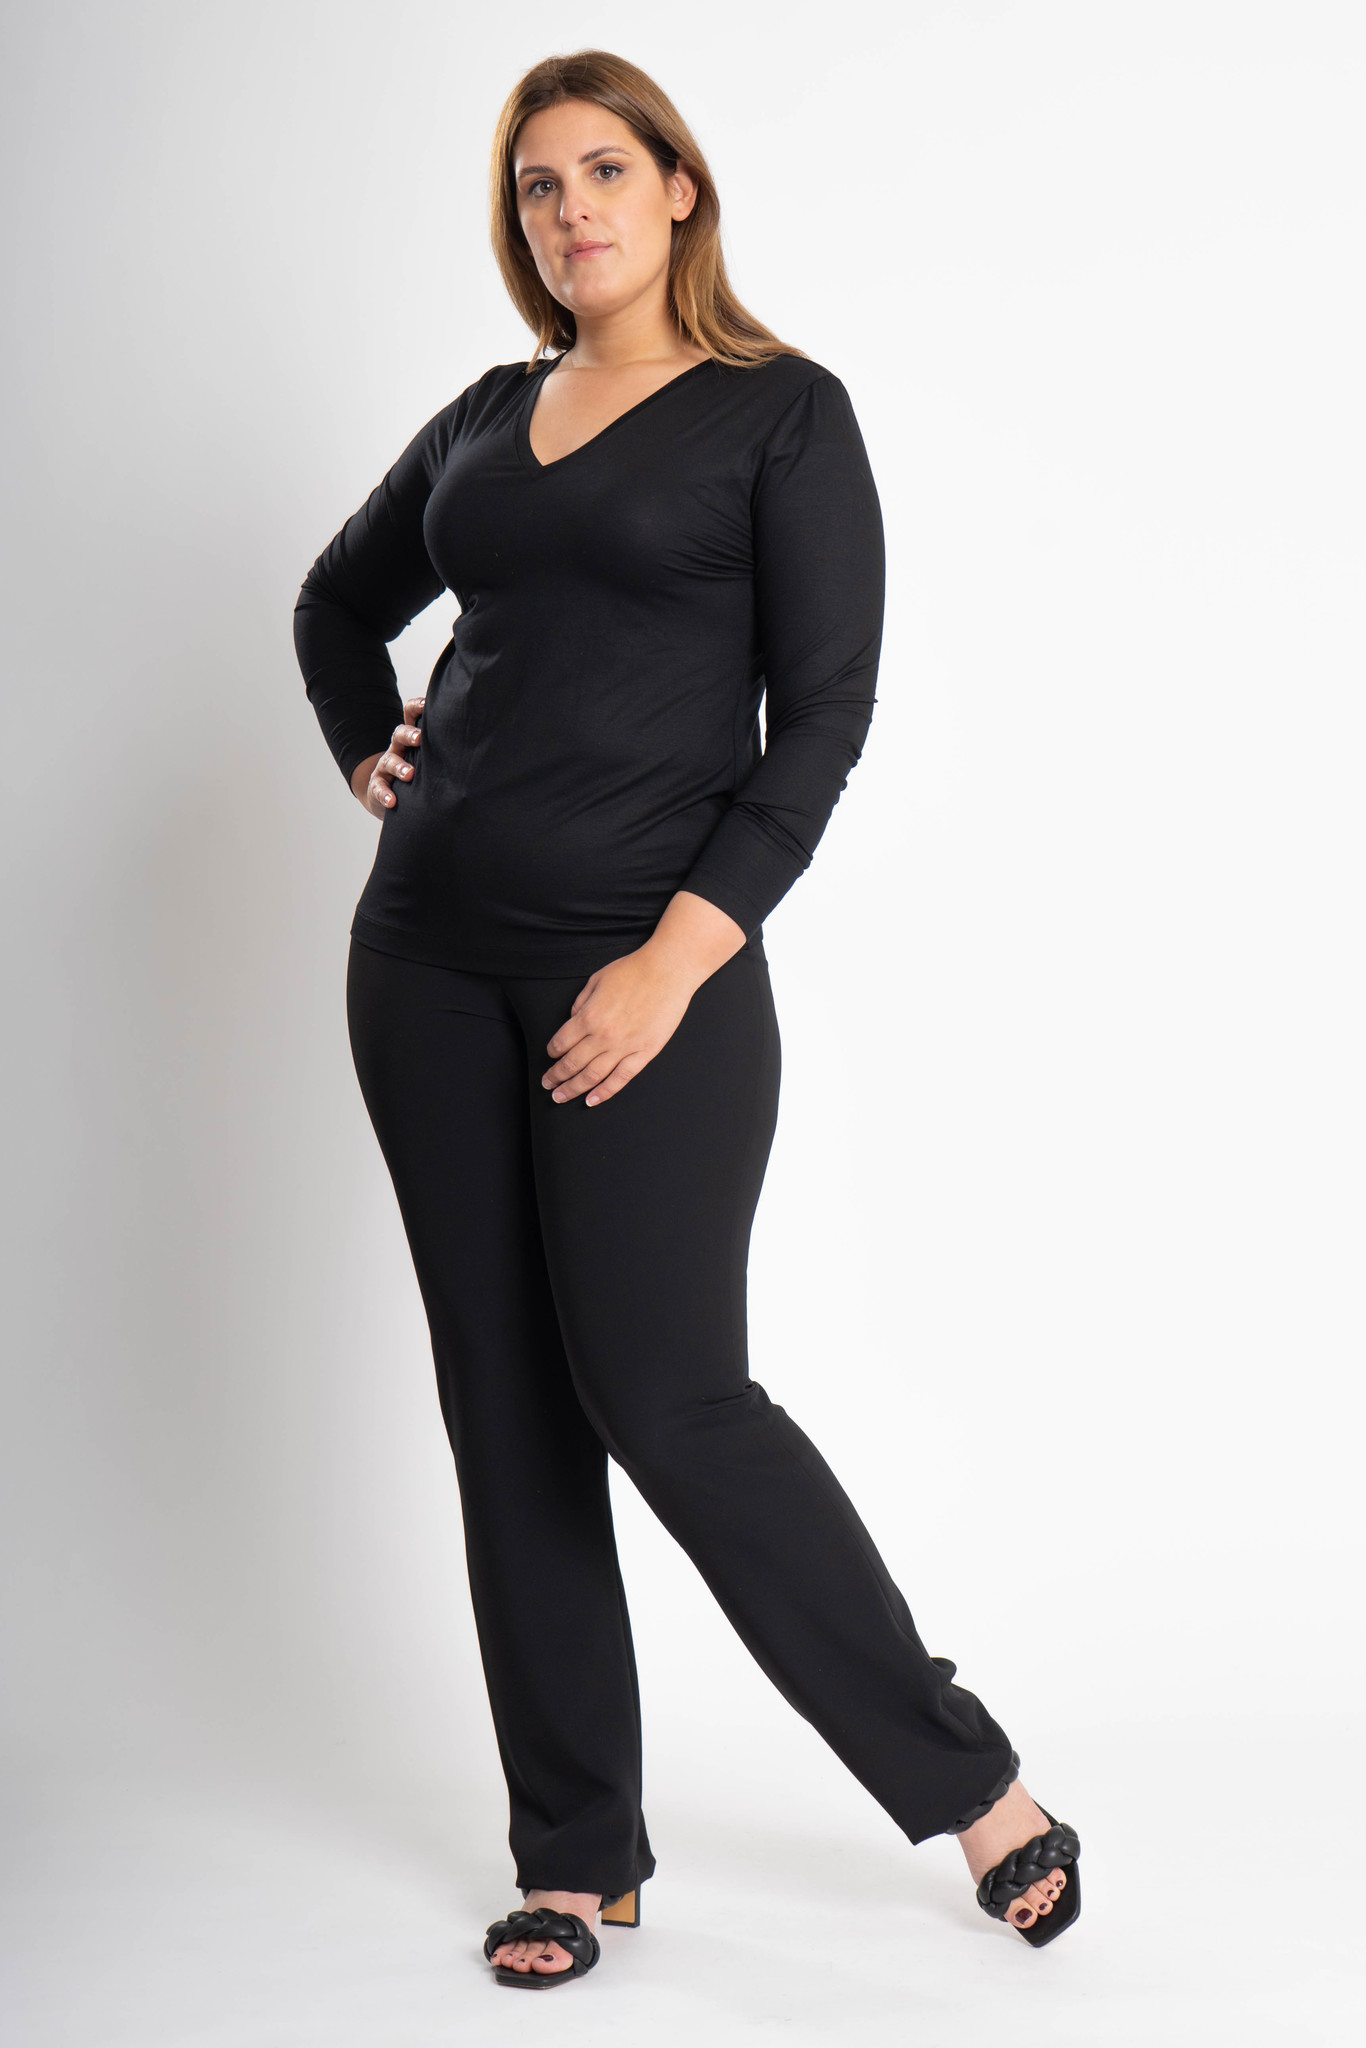 ZWOLF Trousers in Polyester stretch-2